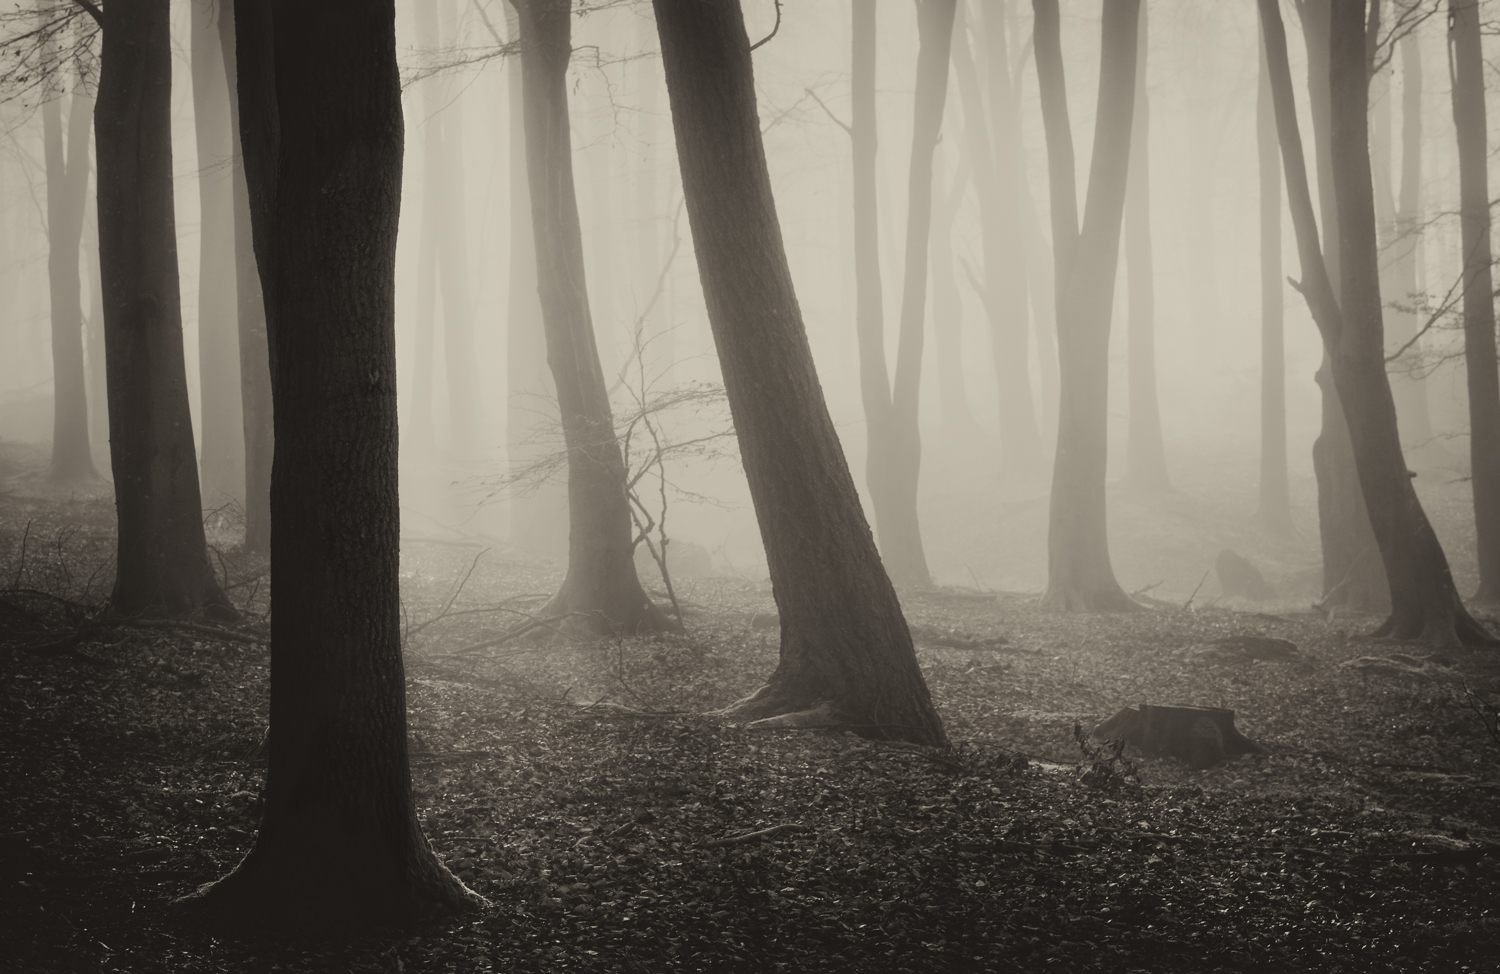 Mystic Beech by Andy Clark